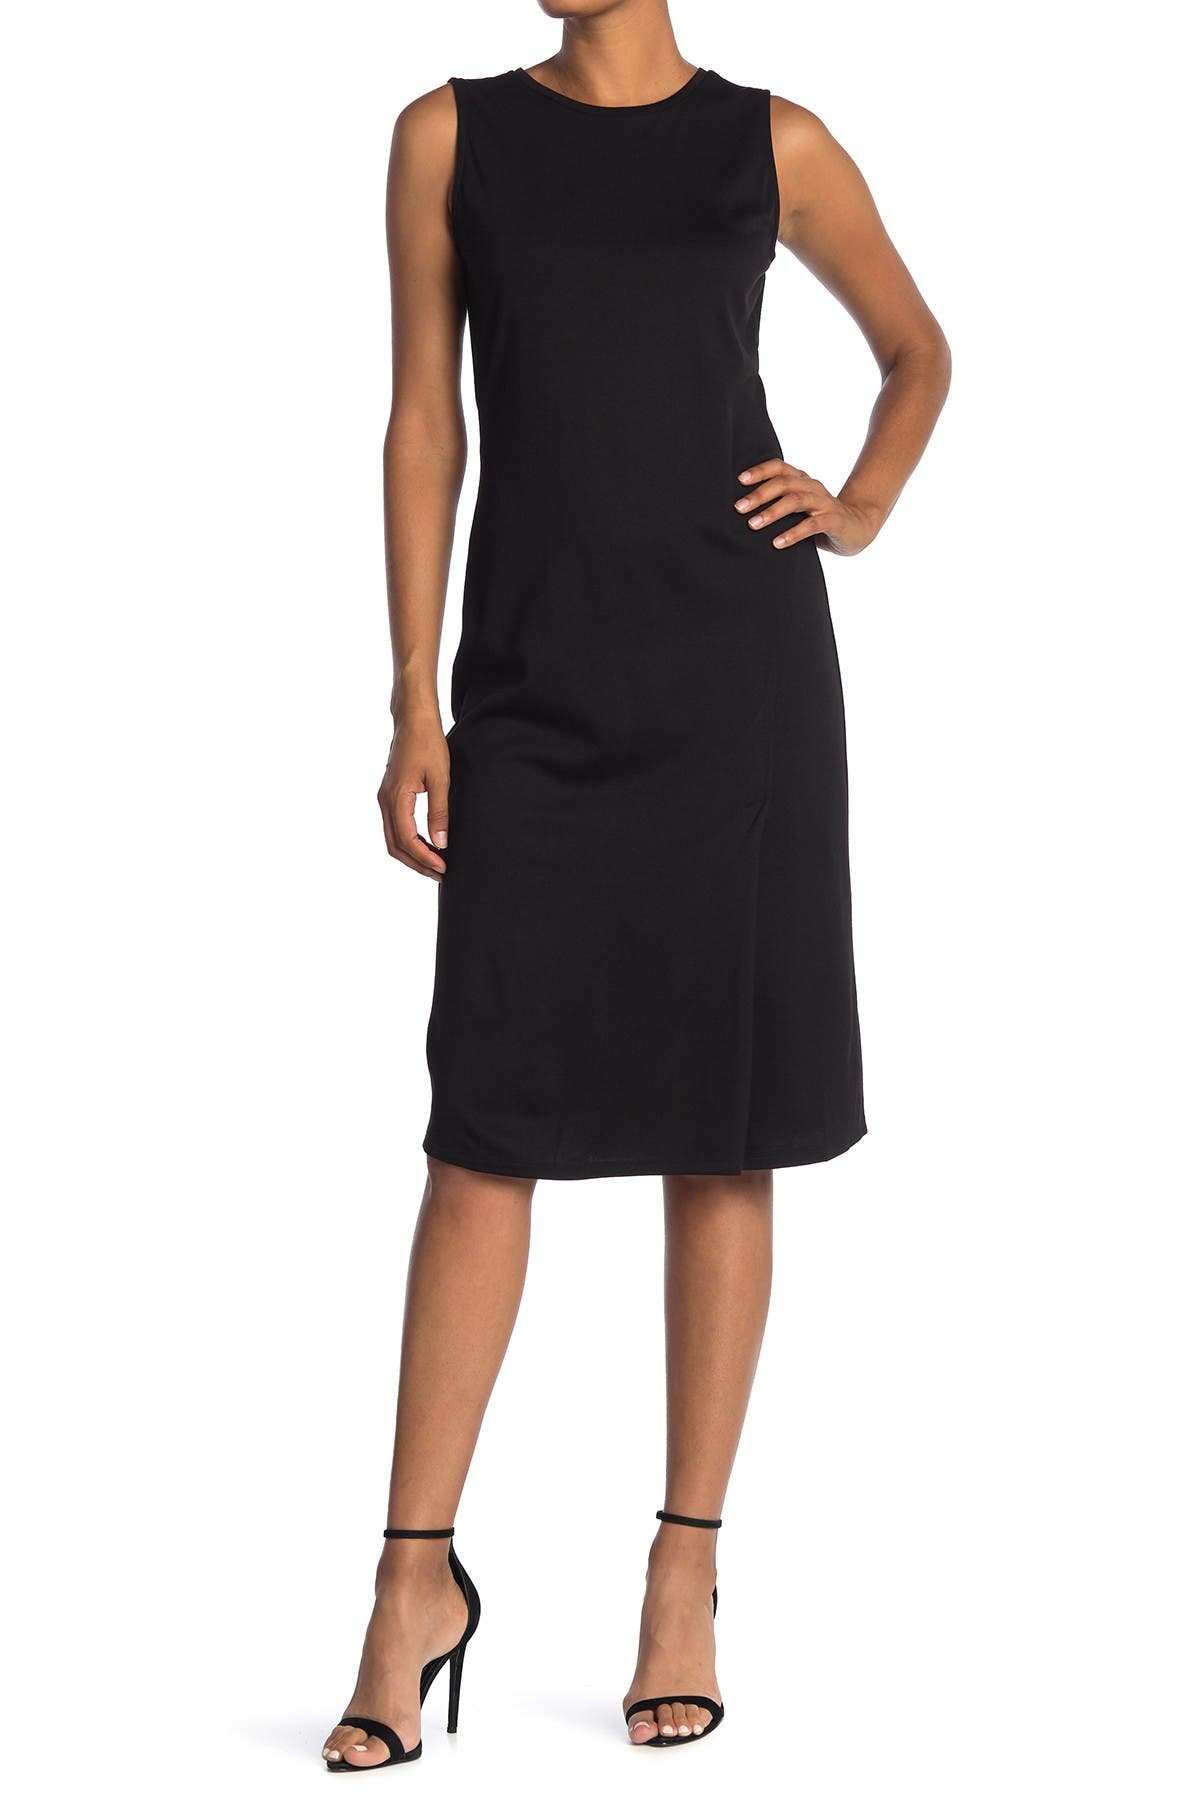 Image of T Tahari Sleeveless Ponte Knit Midi Dress